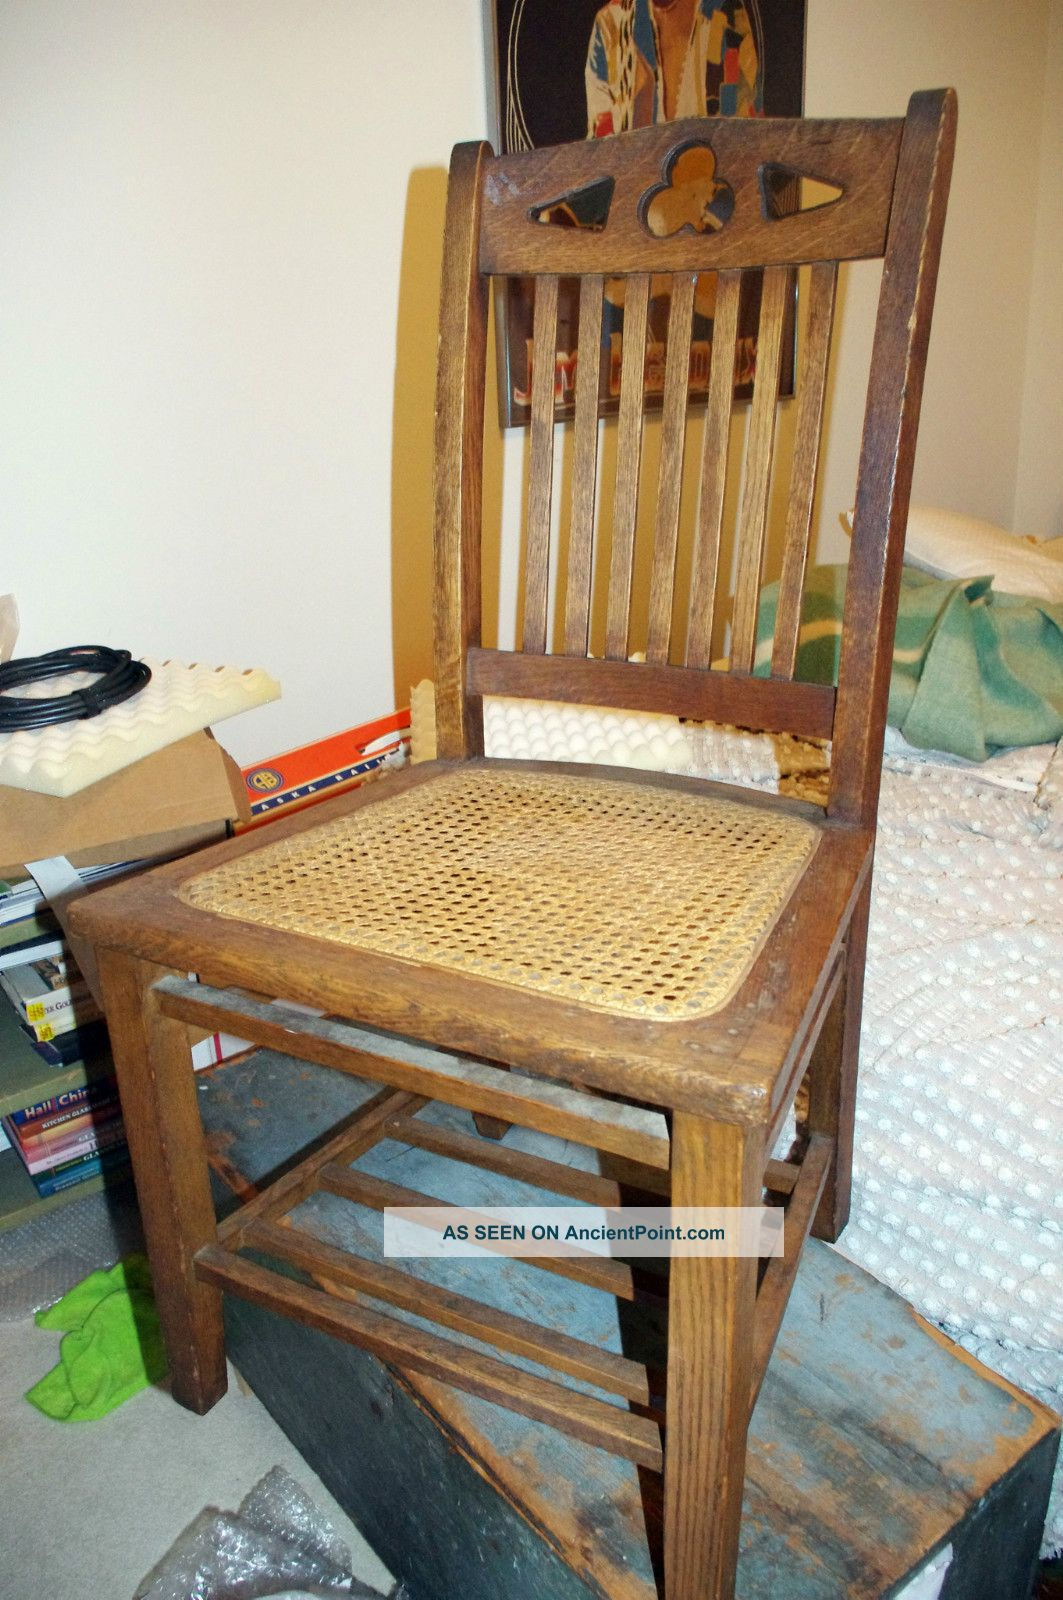 Antique 1920s Arts & Crafts Mission Oak Chair Heywood Wakefield Cane Seat Clover 1900-1950 photo